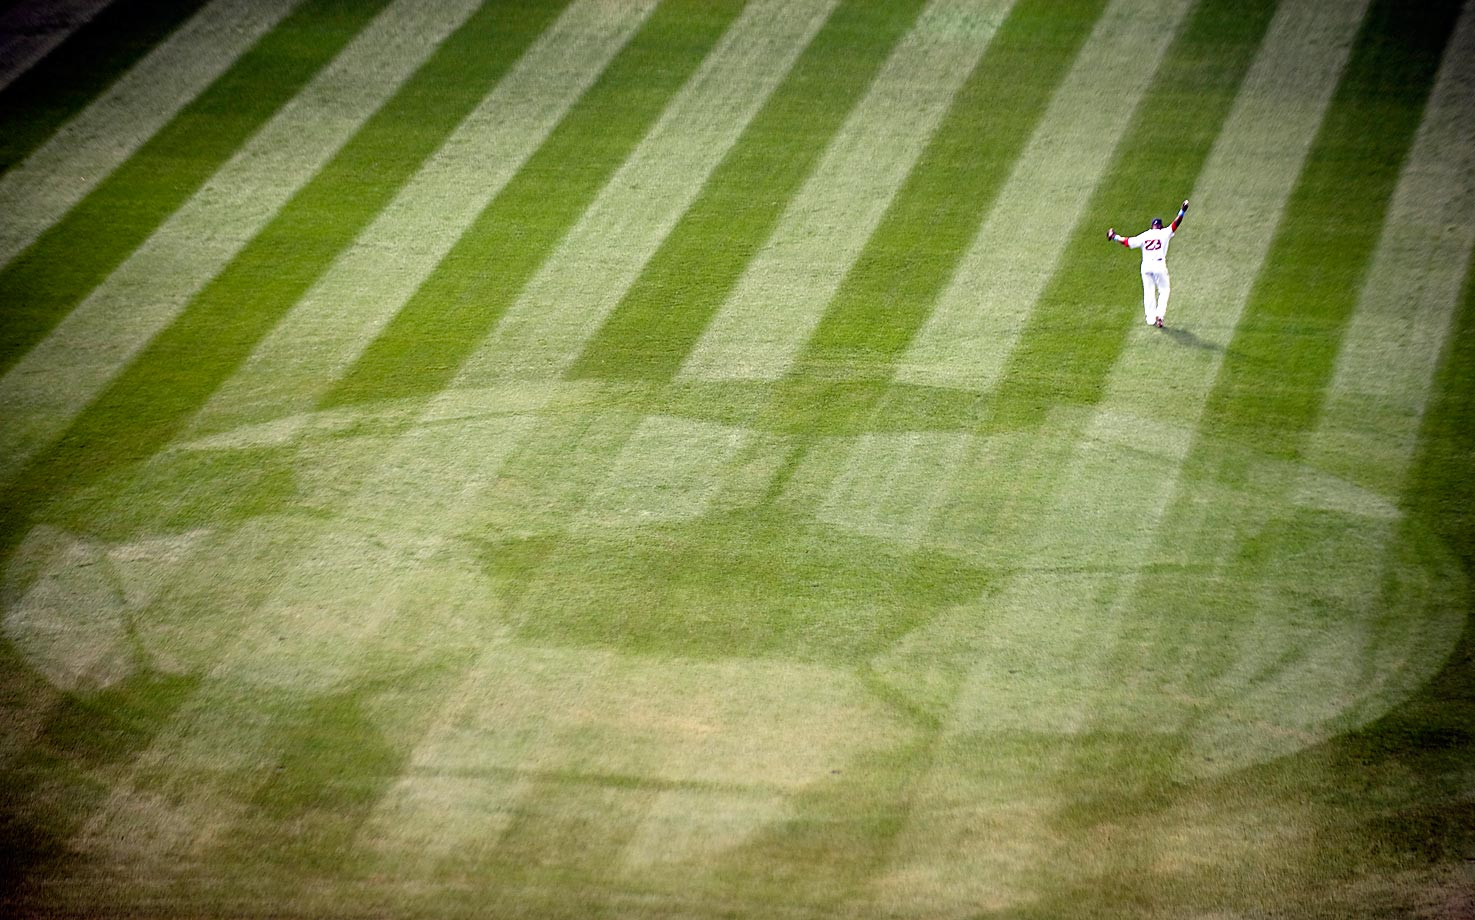 Mike Cameron of the Boston Red Sox on the field at Fenway before the start of a game against the Los Angeles Dodgers on June 20, 2010. An image of a soccer ball was mowed into the center field grass to promote a match between Scottish club Celtic FC and Portuguese club Sporting CP that is set to take place at Fenway Park on July 21st.